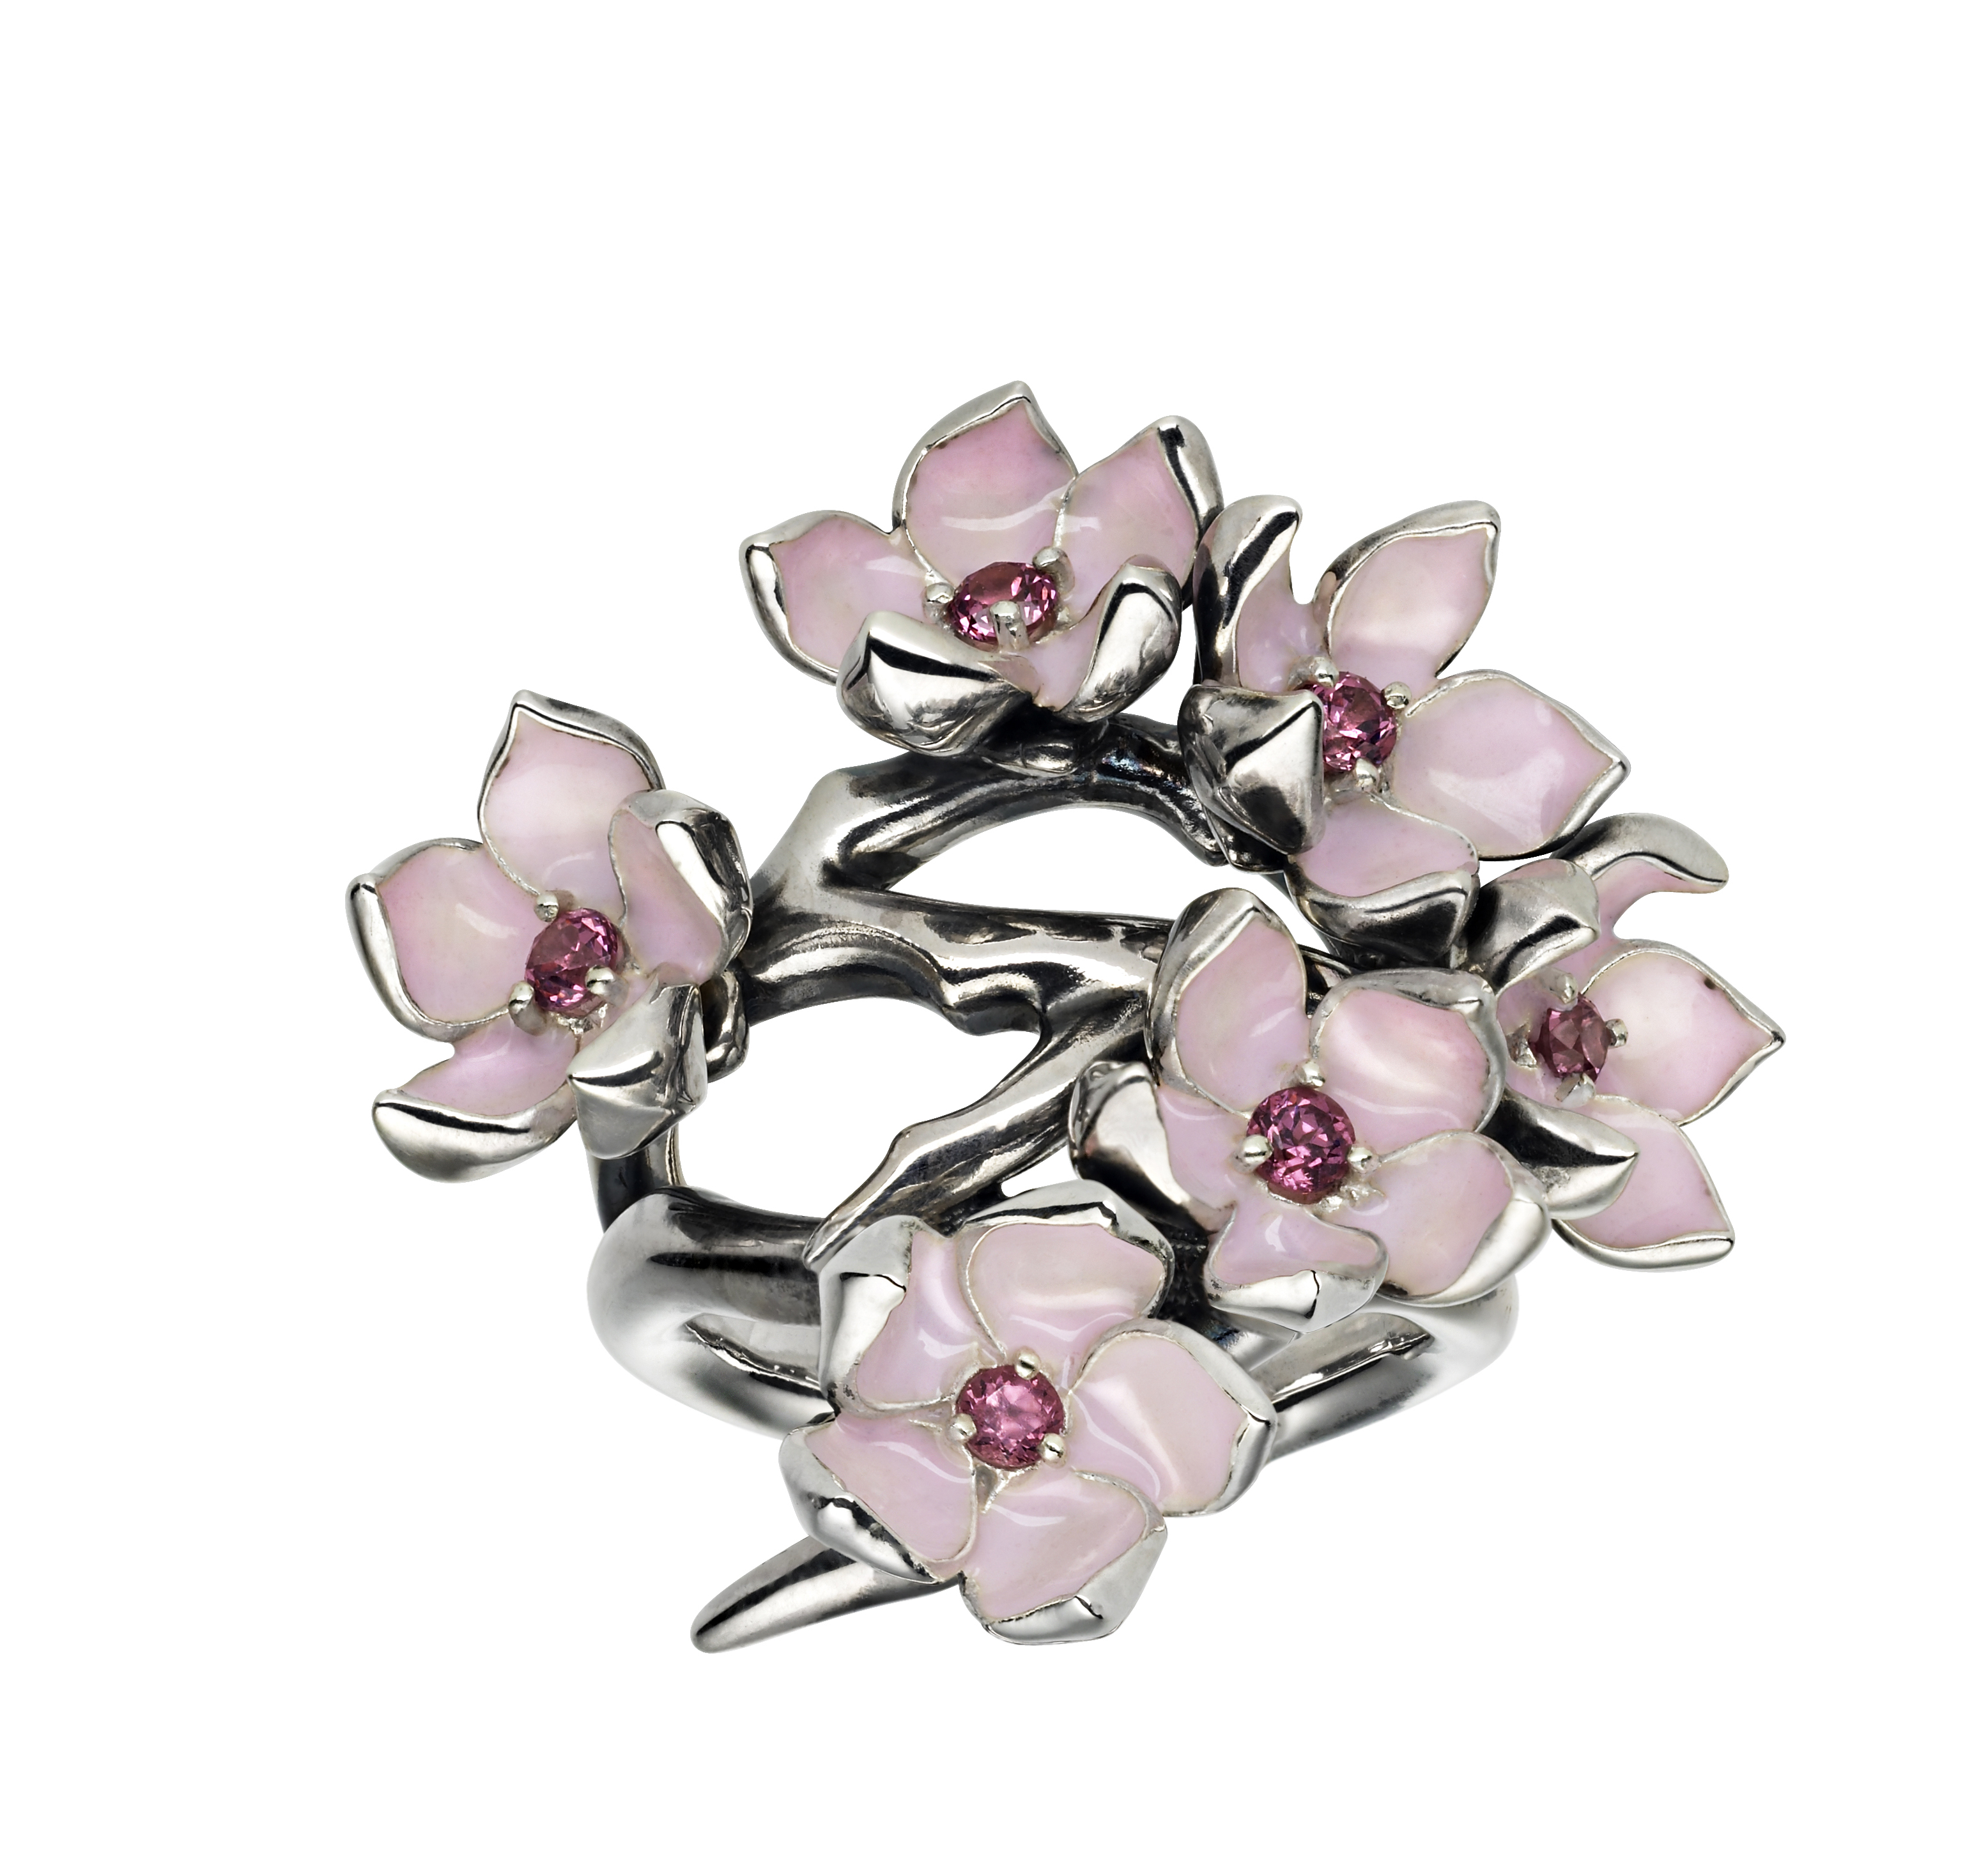 A taste of the range... the beautiful silver & pink enamel cherry bud ring with pink pearls